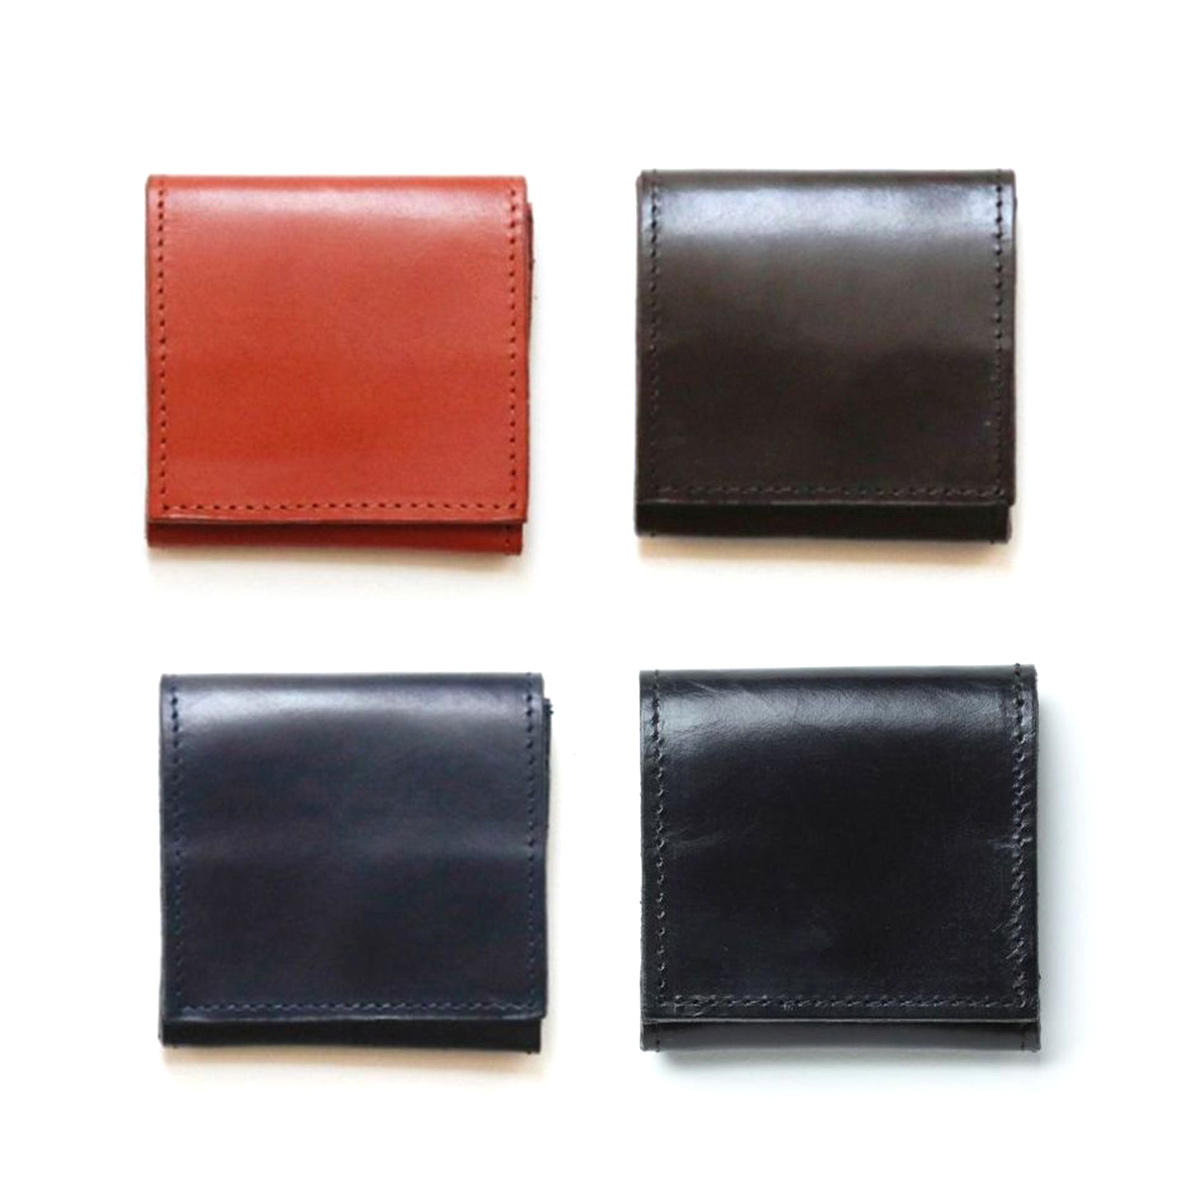 GLENROYAL / STANDARD COIN CASE